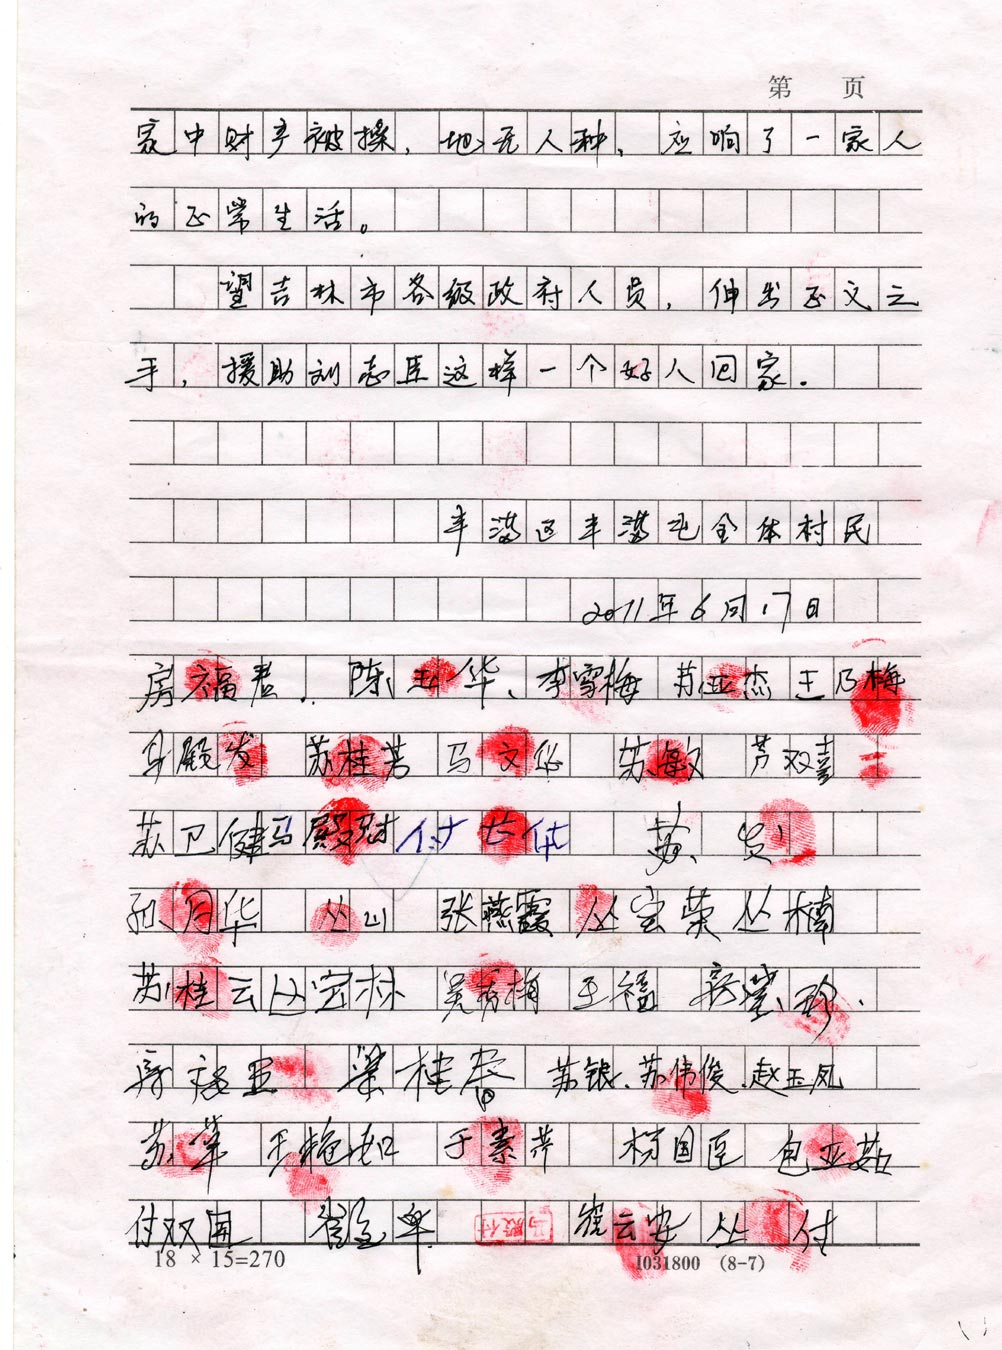 Villagers' signatures and thumbprints in red ink at the bottom of a letter to Jilin authorities calling for the release of a neighbor detained for practicing Falun Gong